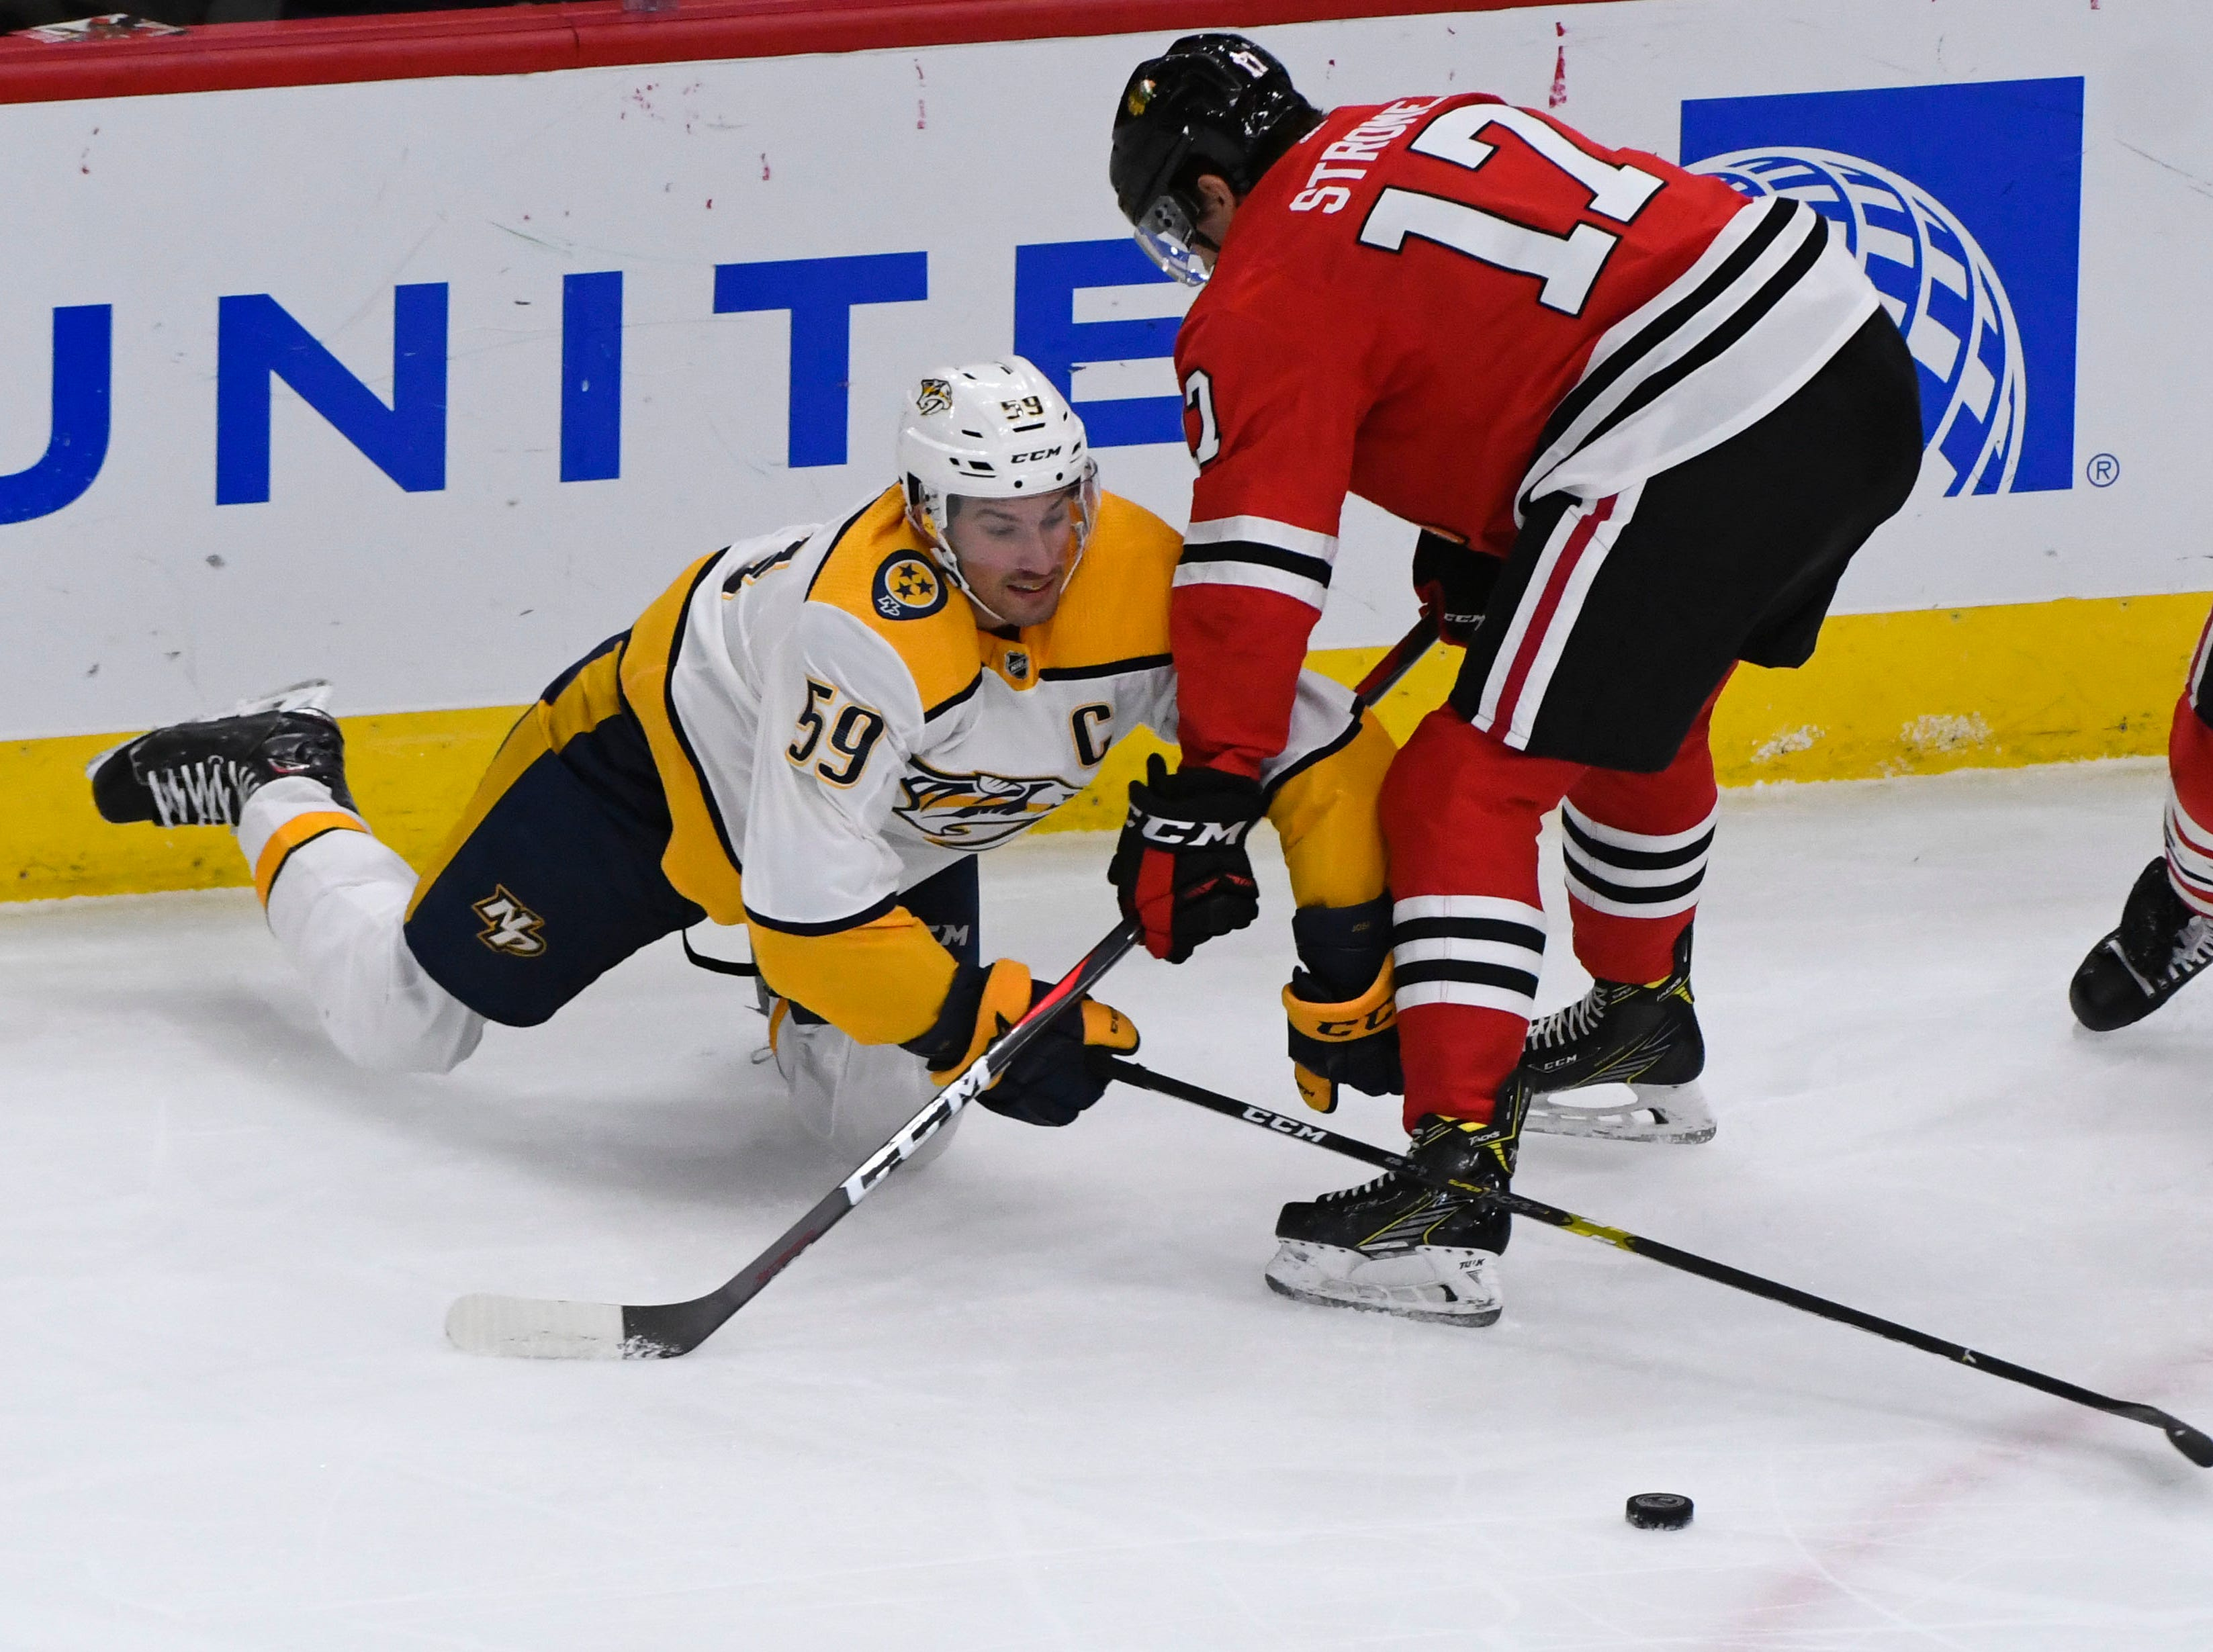 Dec 18, 2018; Chicago, IL, USA; Nashville Predators defenseman Roman Josi (59) and Chicago Blackhawks center Dylan Strome (17) fight for the puck during the first period at the United Center.